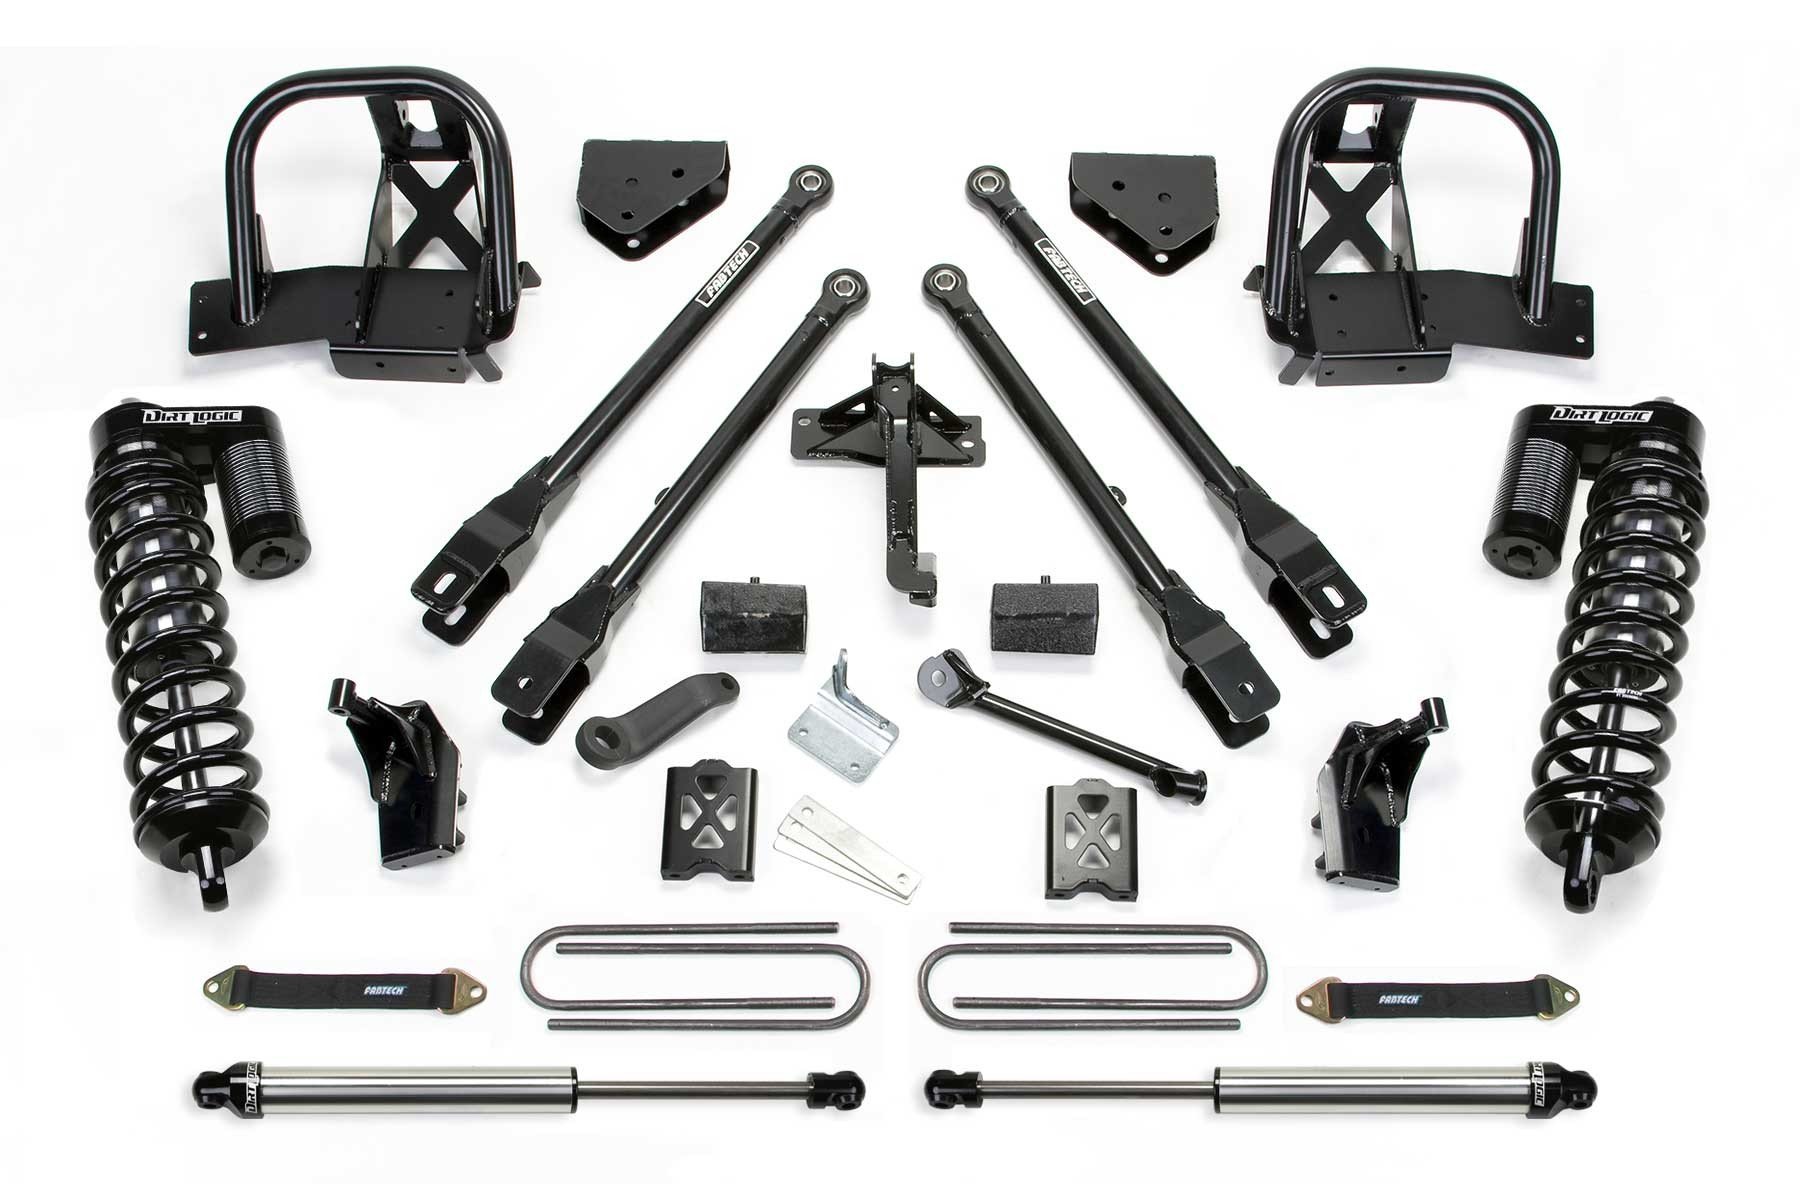 FABTECH 2008-10 Ford F250 4WD- 6″ 4 LINK SYSTEM W/ DIRT LOGIC 4.0 COILOVERS & REAR DIRT LOGIC SHOCKS